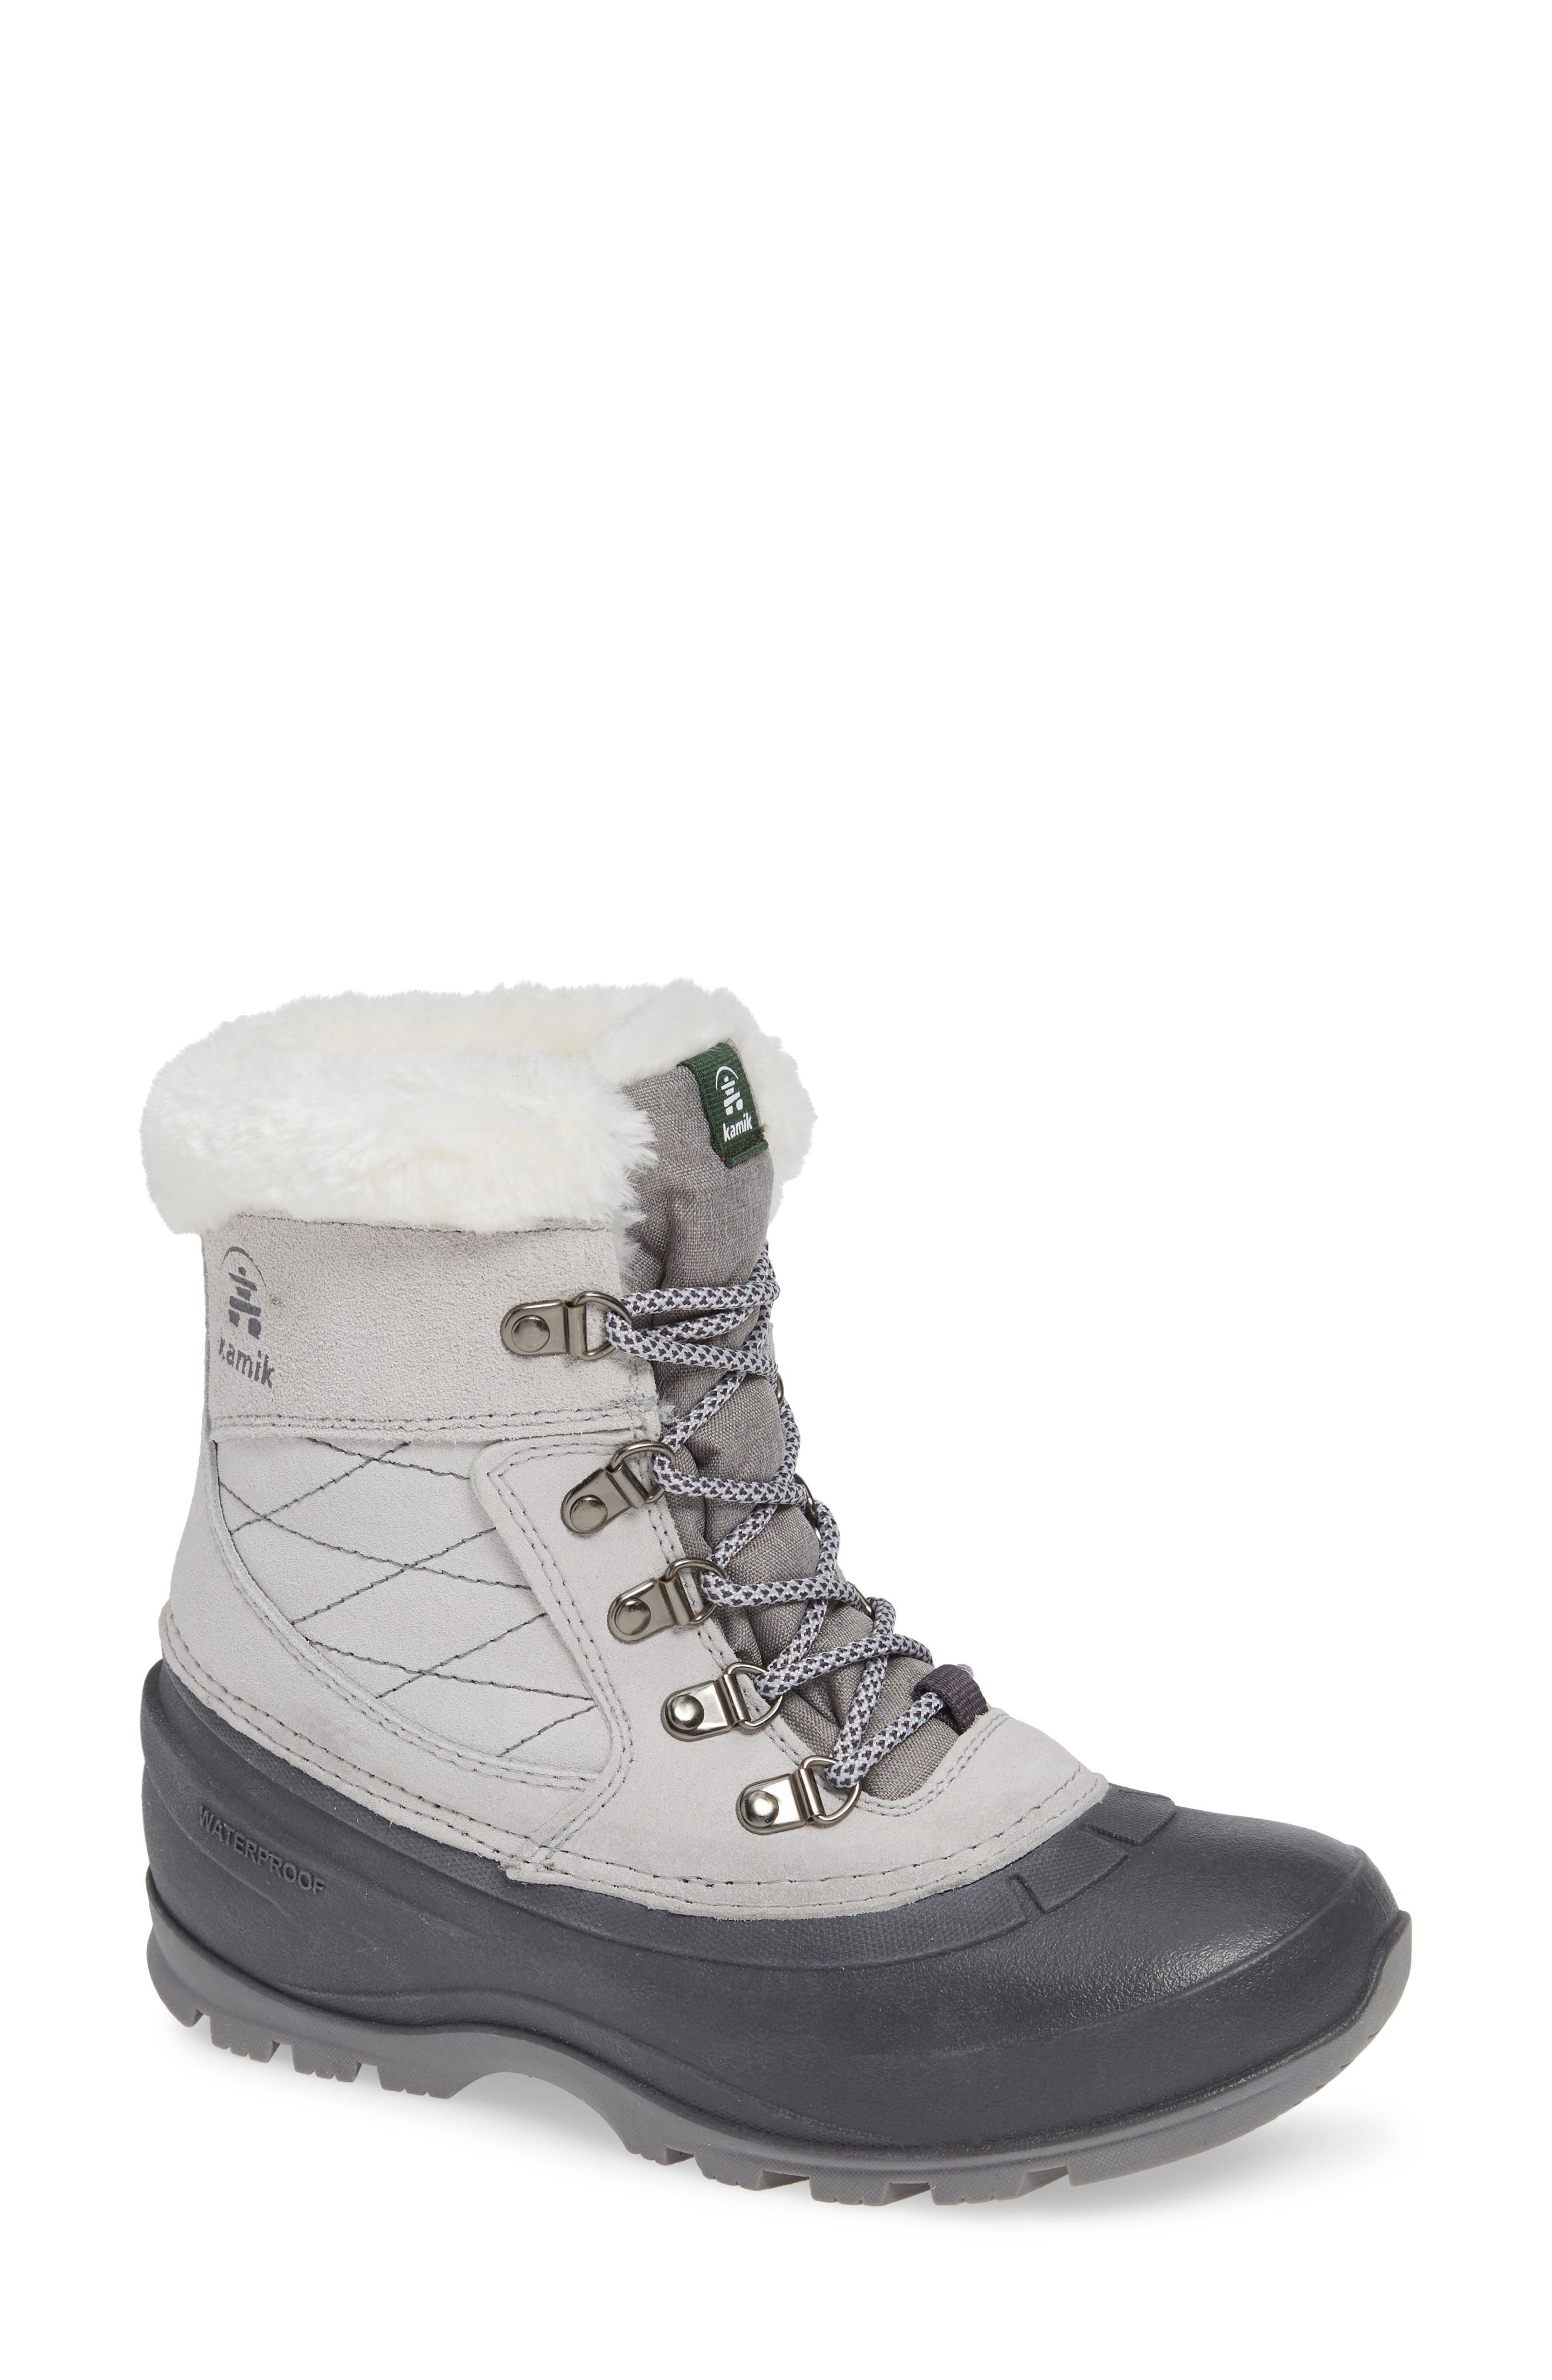 KAMIK Snovalley1 Waterproof Thinsulate<sup>®</sup> Insulated Snow Boot, Main, color, LIGHT GREY SUEDE